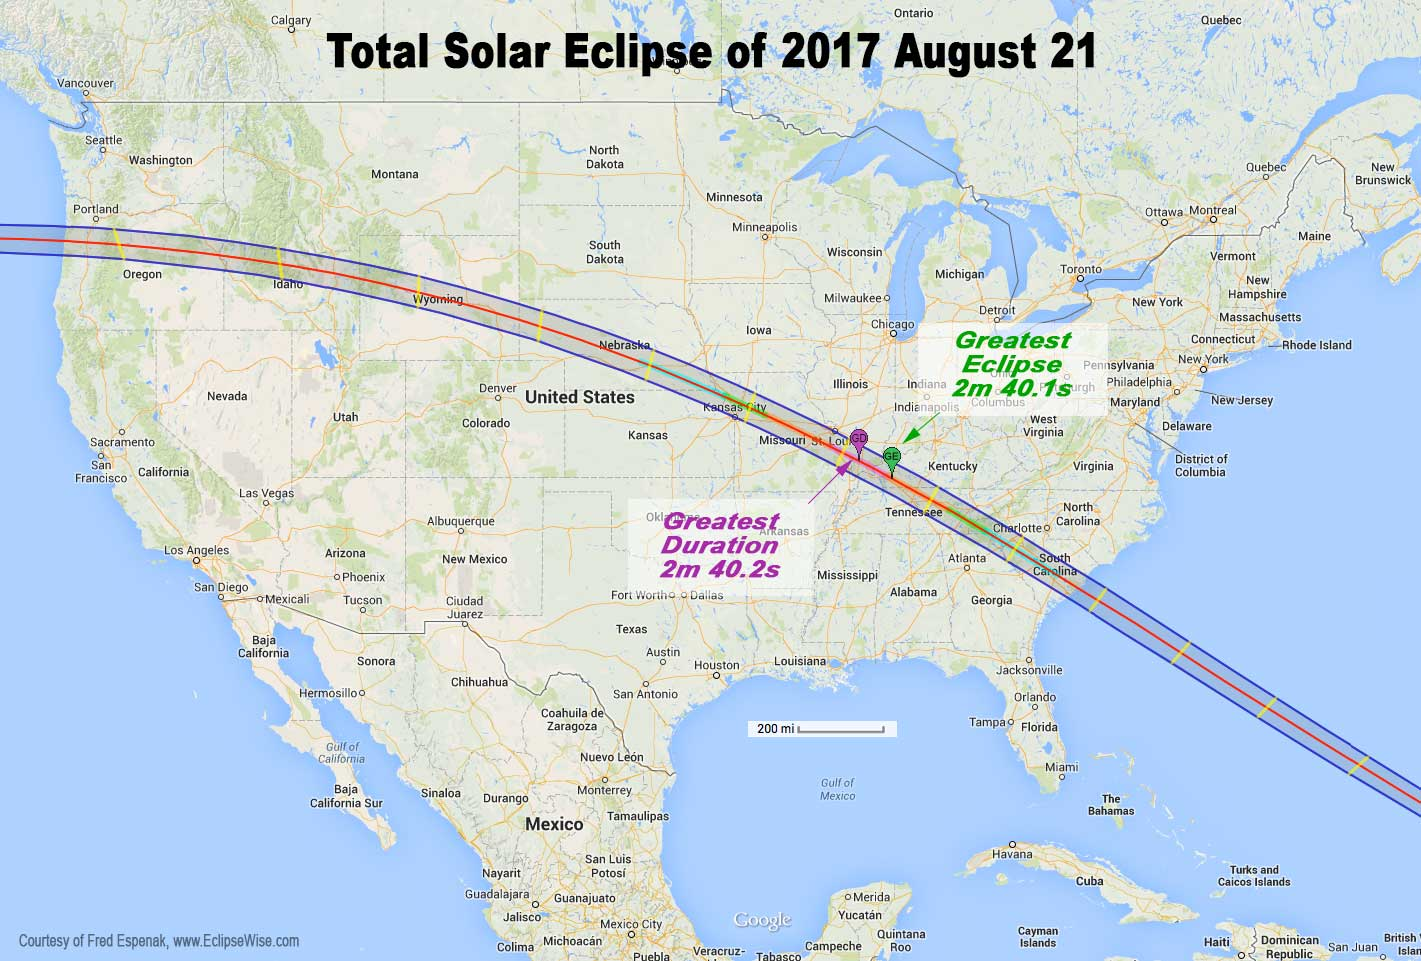 alignment of the sun the moon and the earth will cast the moon s shadow on a path a little over 100 miles wide taking a wide arching through the usa